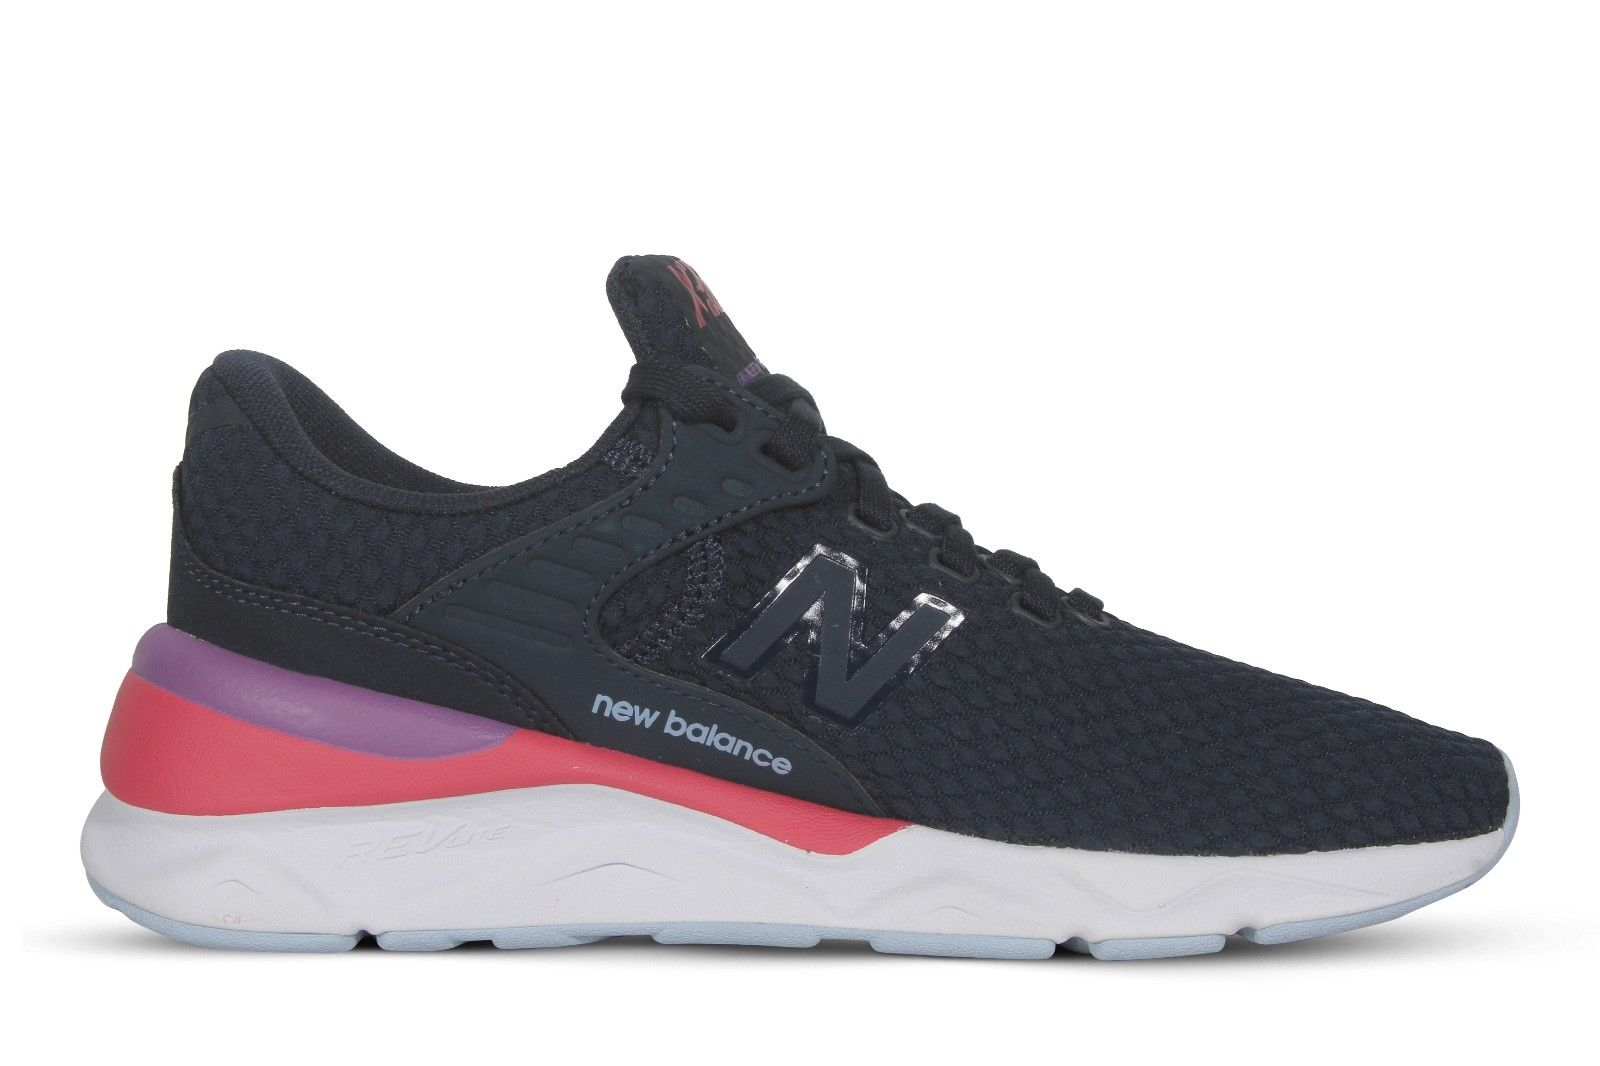 New Balance X90 Classic Women's Running Shoes